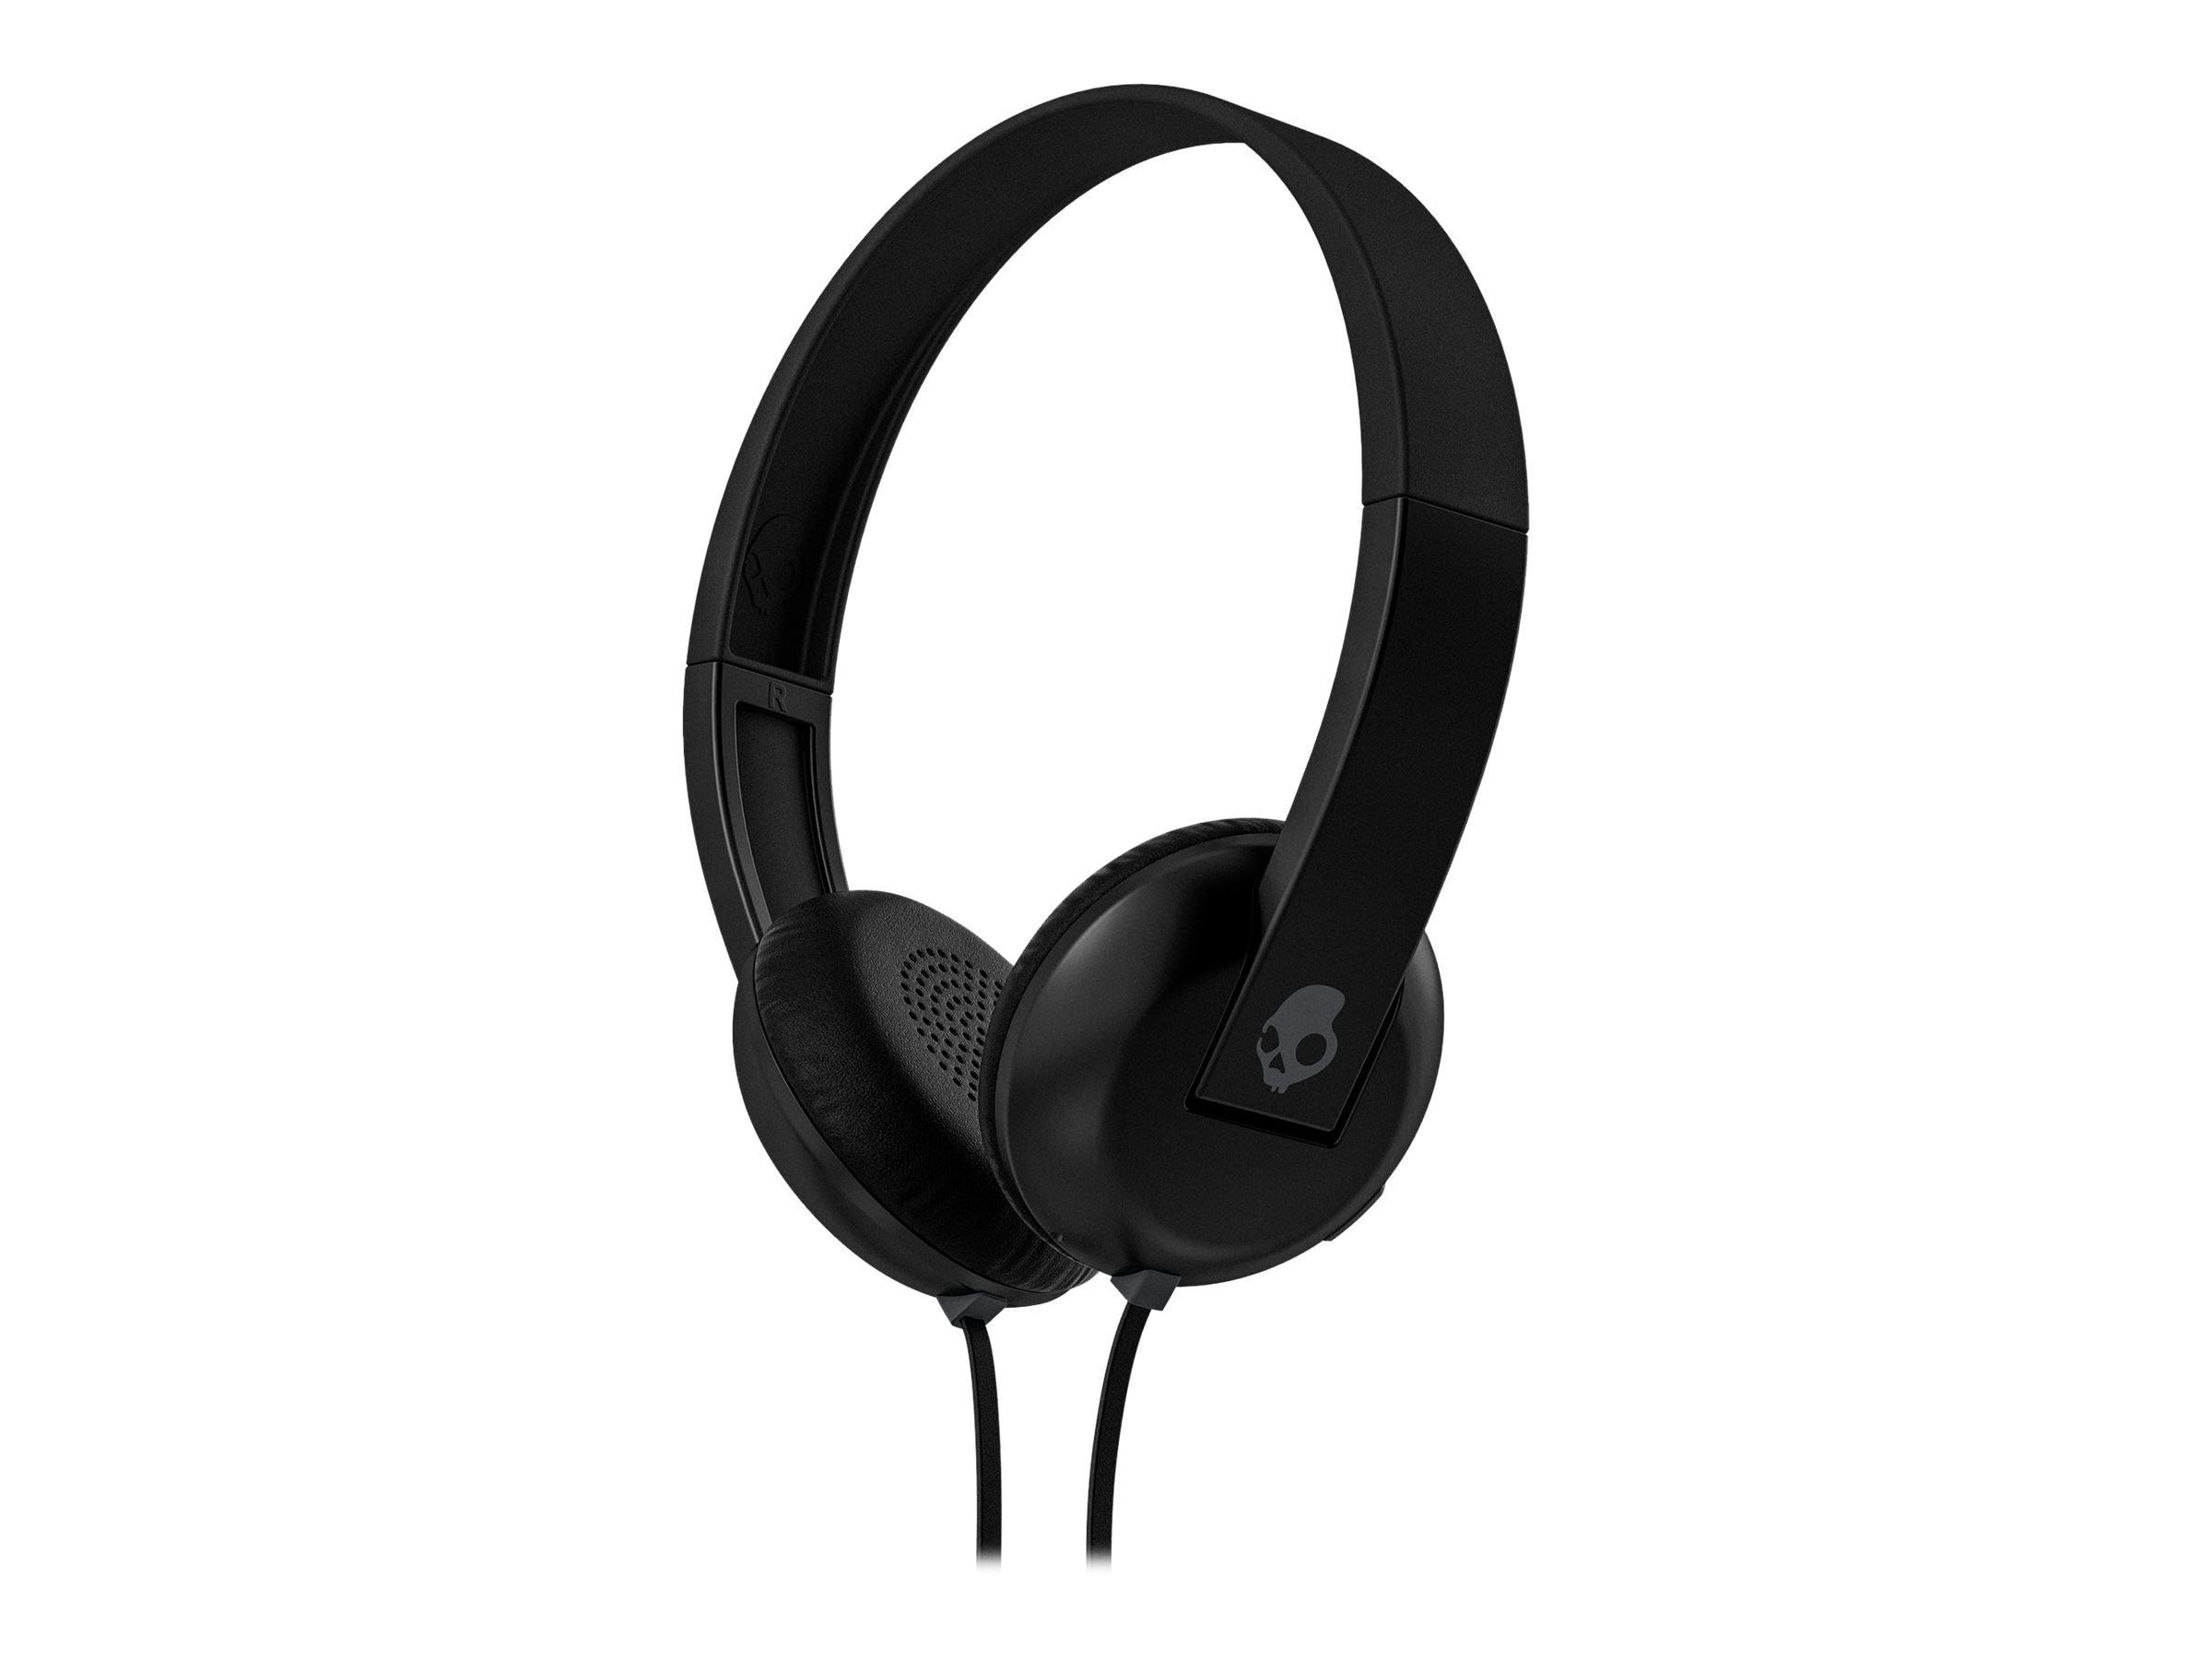 Skullcandy Uproar Headphones - Black Gray Black, S5URHT-456, 23836898, Headsets (w/ microphone)